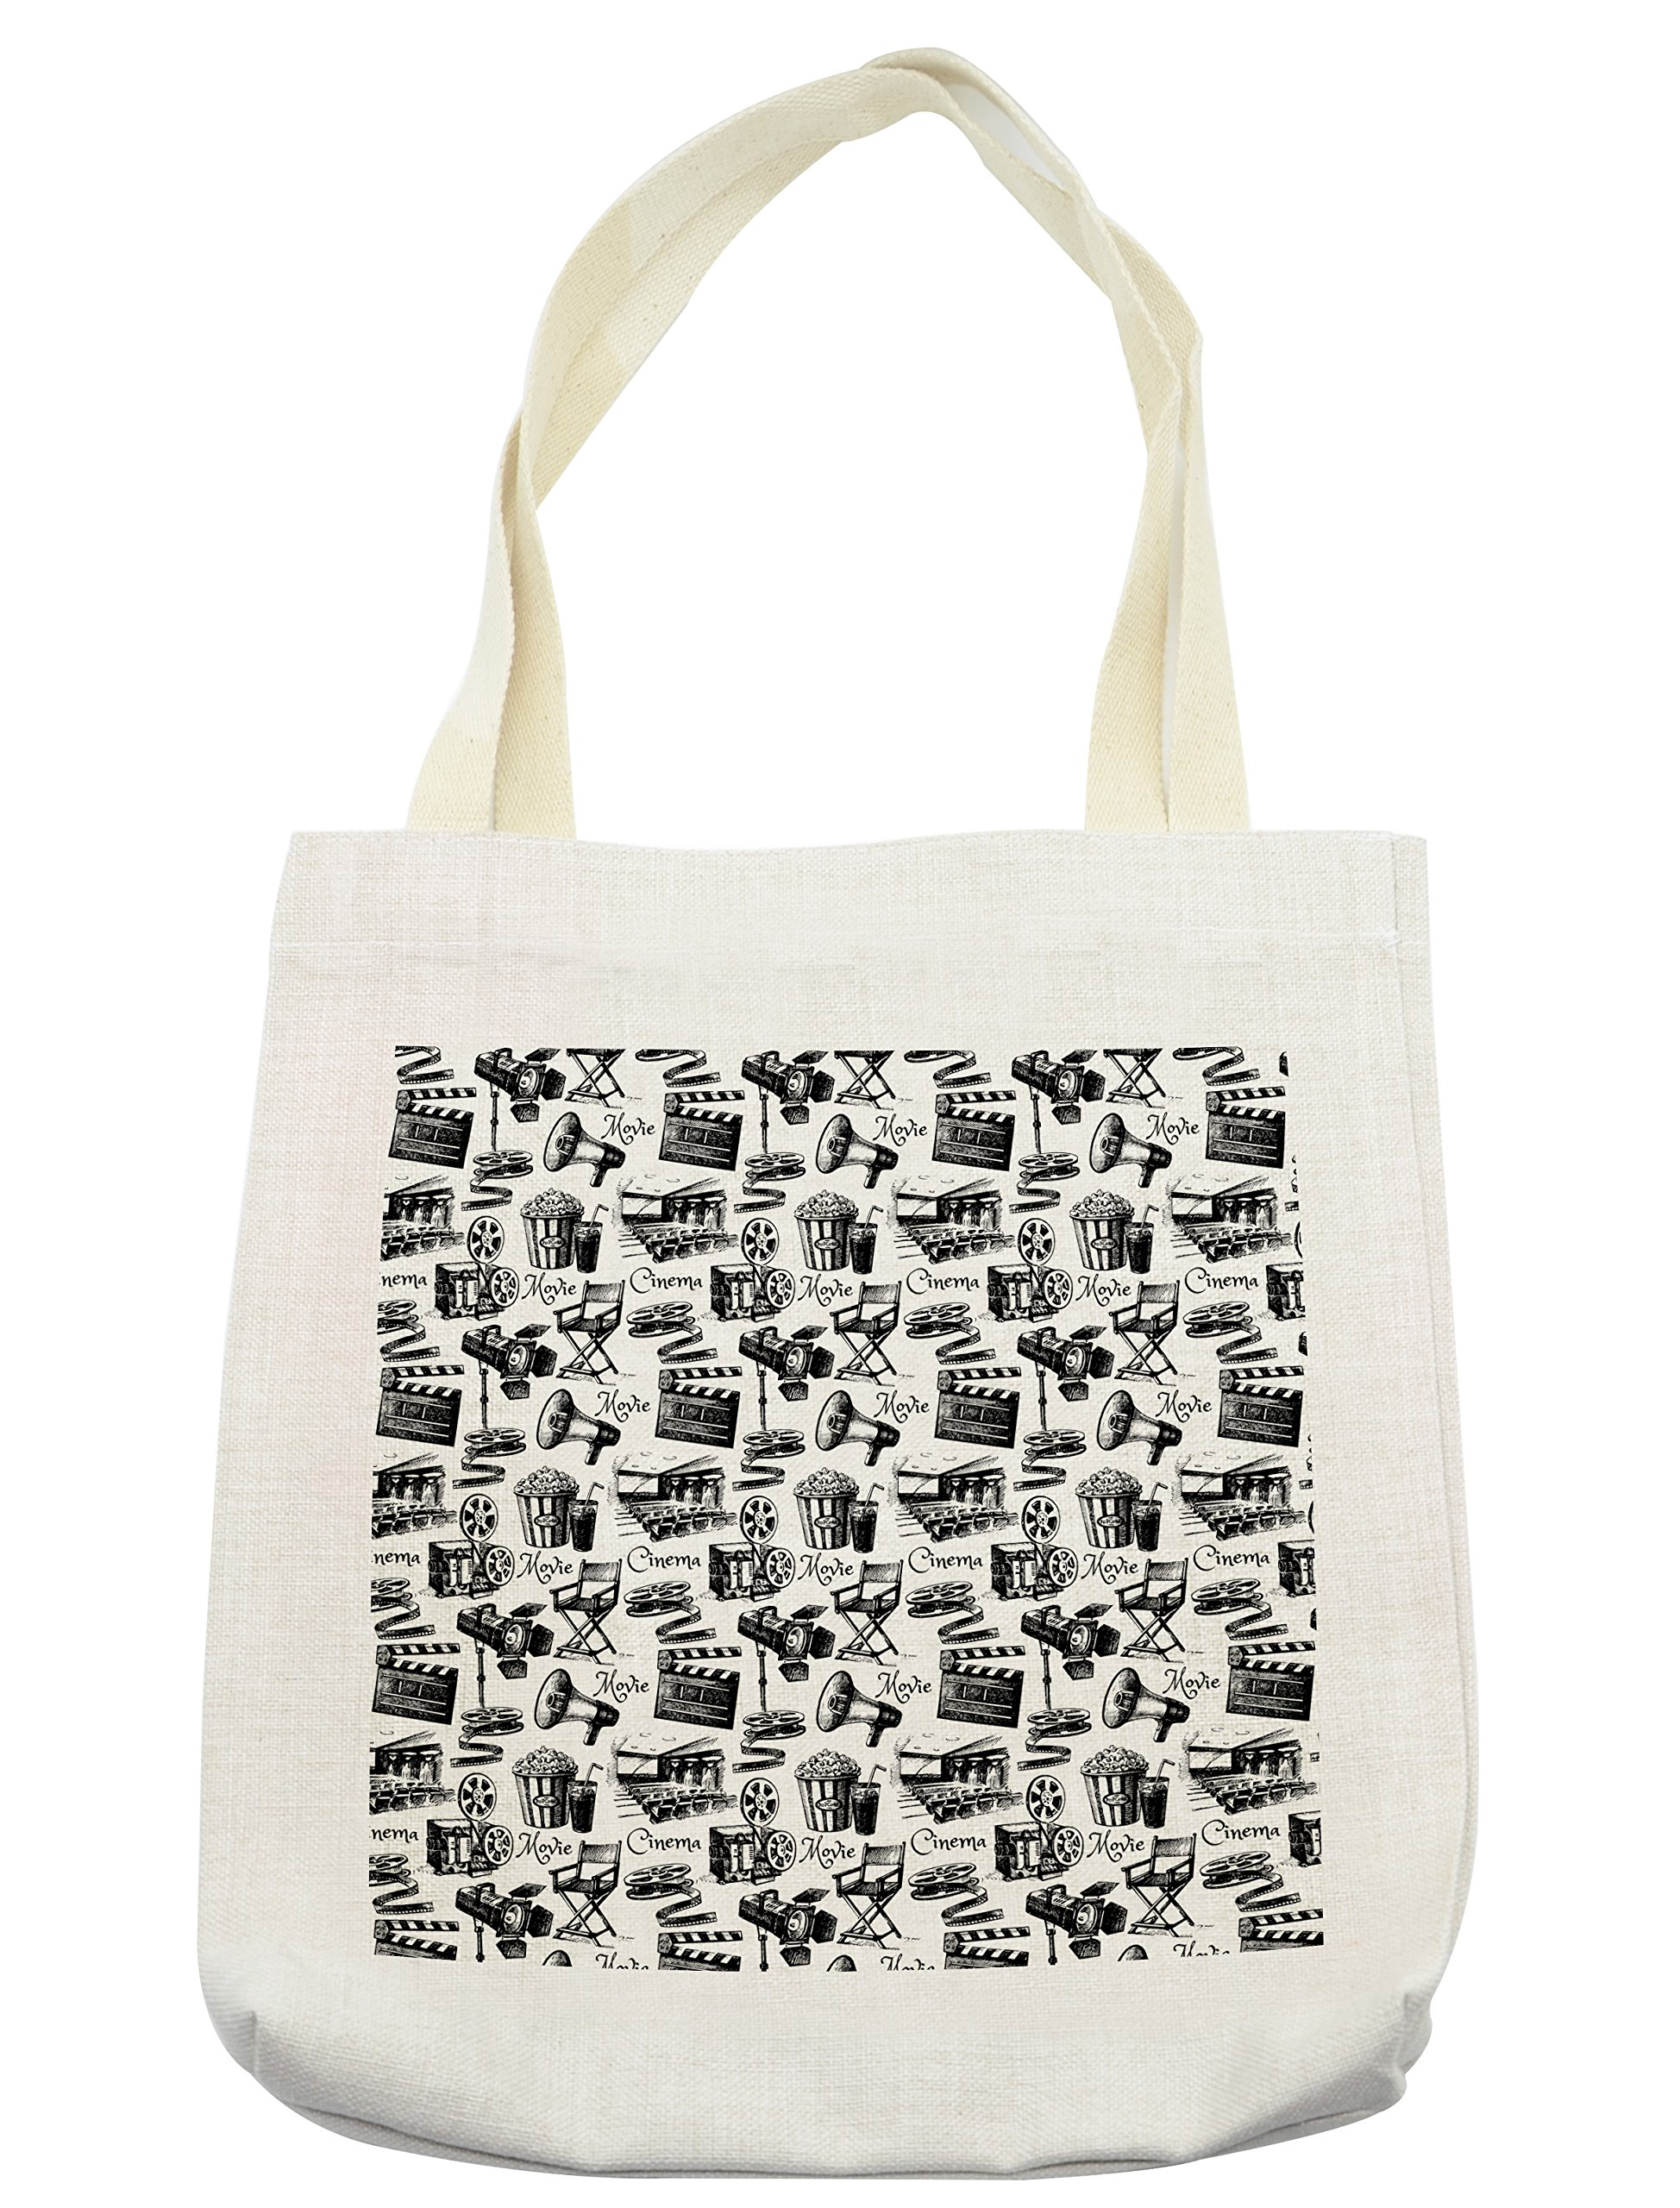 Lunarable Movie Tote Bag, Vintage Artful Film Cinema Icons Motion Camera Action Record Graphic Style Print, Cloth Linen Reusable Bag for Shopping Groceries Books Beach Travel & More, Cream